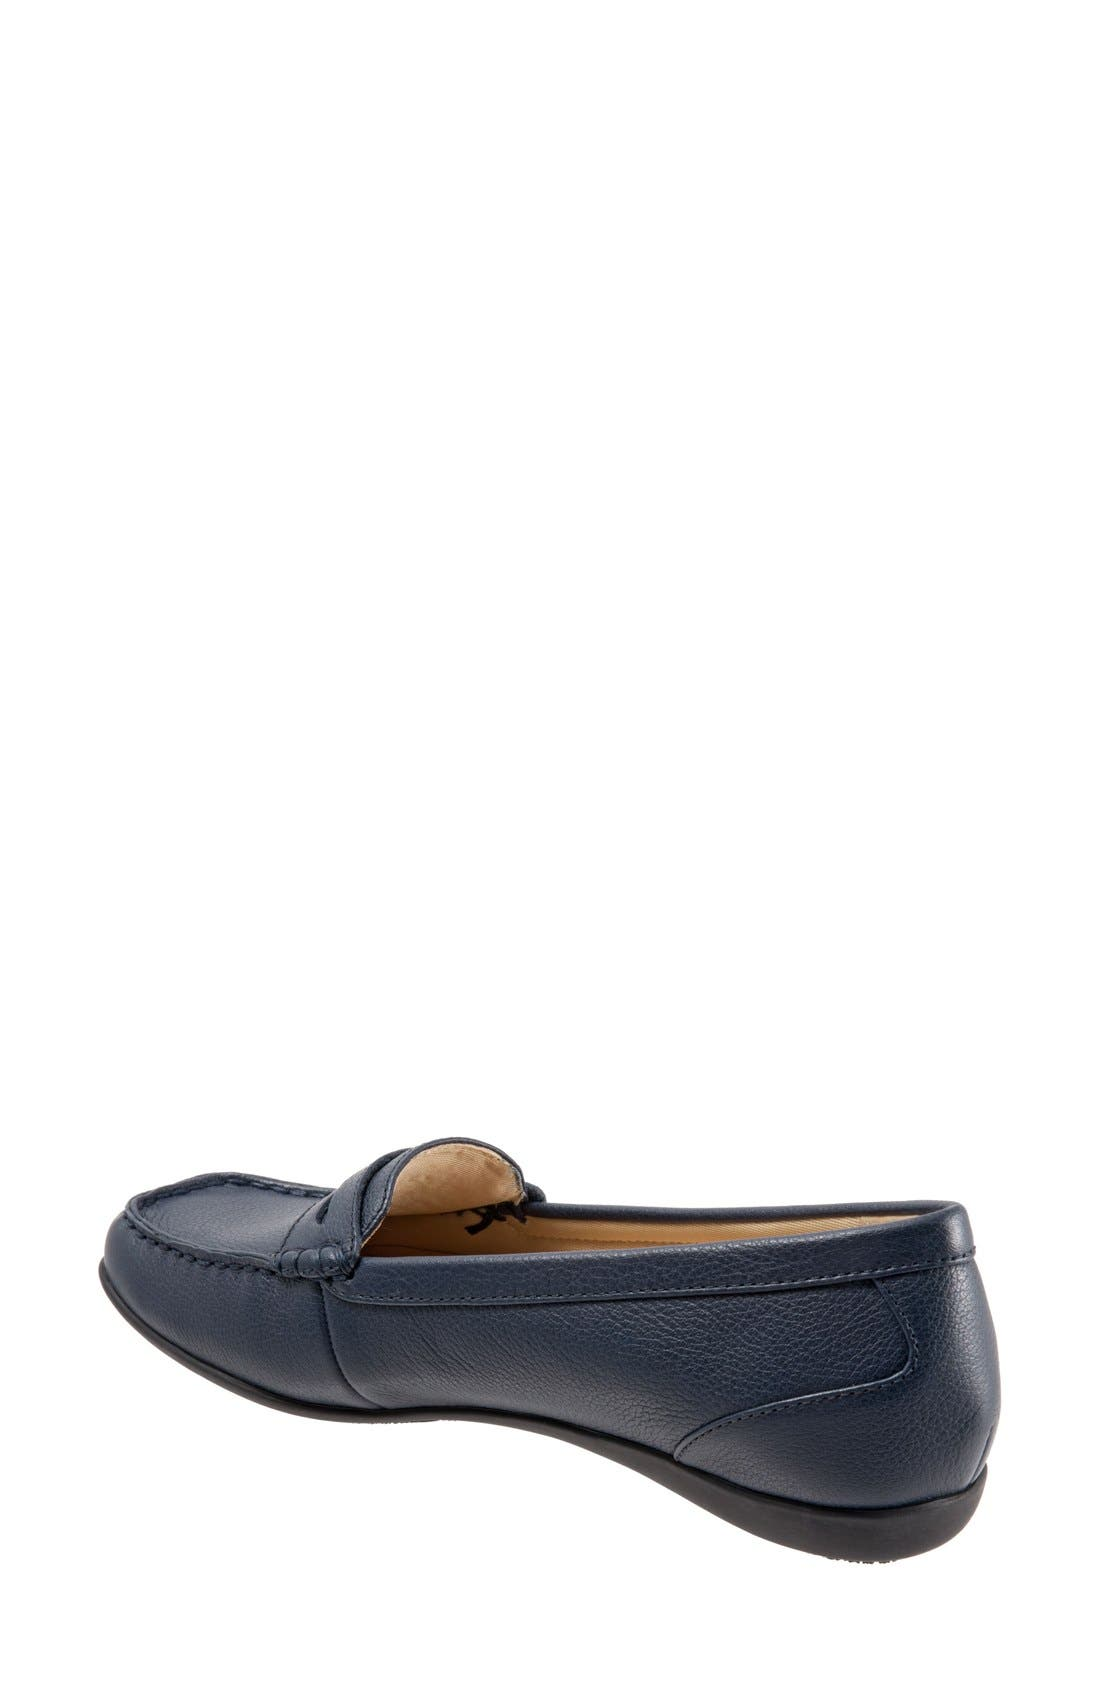 'Staci' Penny Loafer,                             Alternate thumbnail 2, color,                             Navy Leather